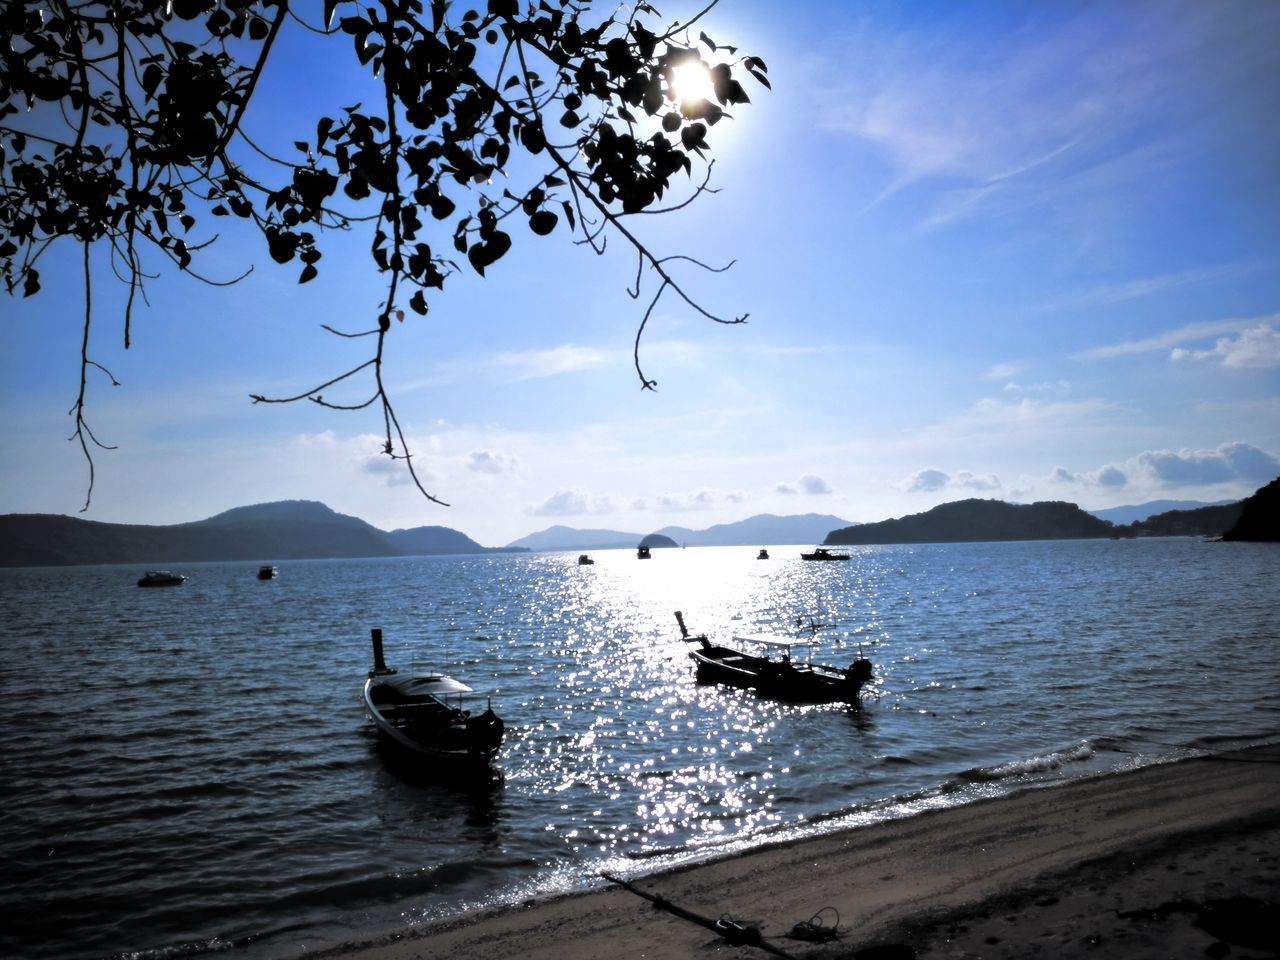 Crap Panwa Phuket Nautical Vessel Sea Water Scenics Transportation Mountain Outdoors Nature Beauty In Nature Landscape Sky Pedal Boat Sailboat No People Astrology Sign Day Yachting